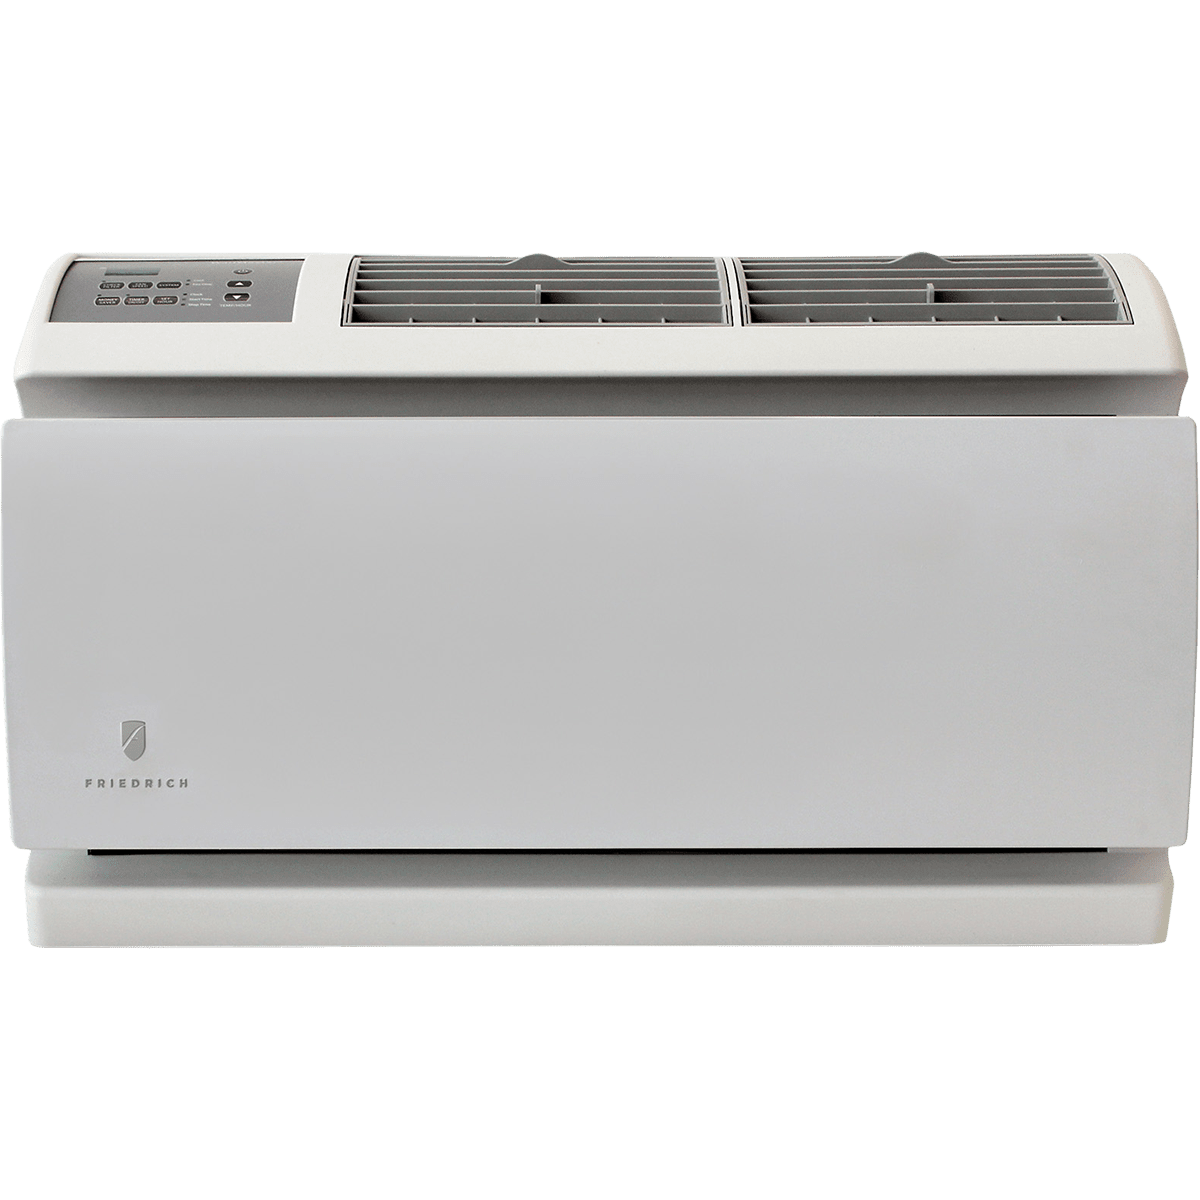 Friedrich Wallmaster 14,500 BTU Through-the-Wall AC & Heater (WE15D33A)